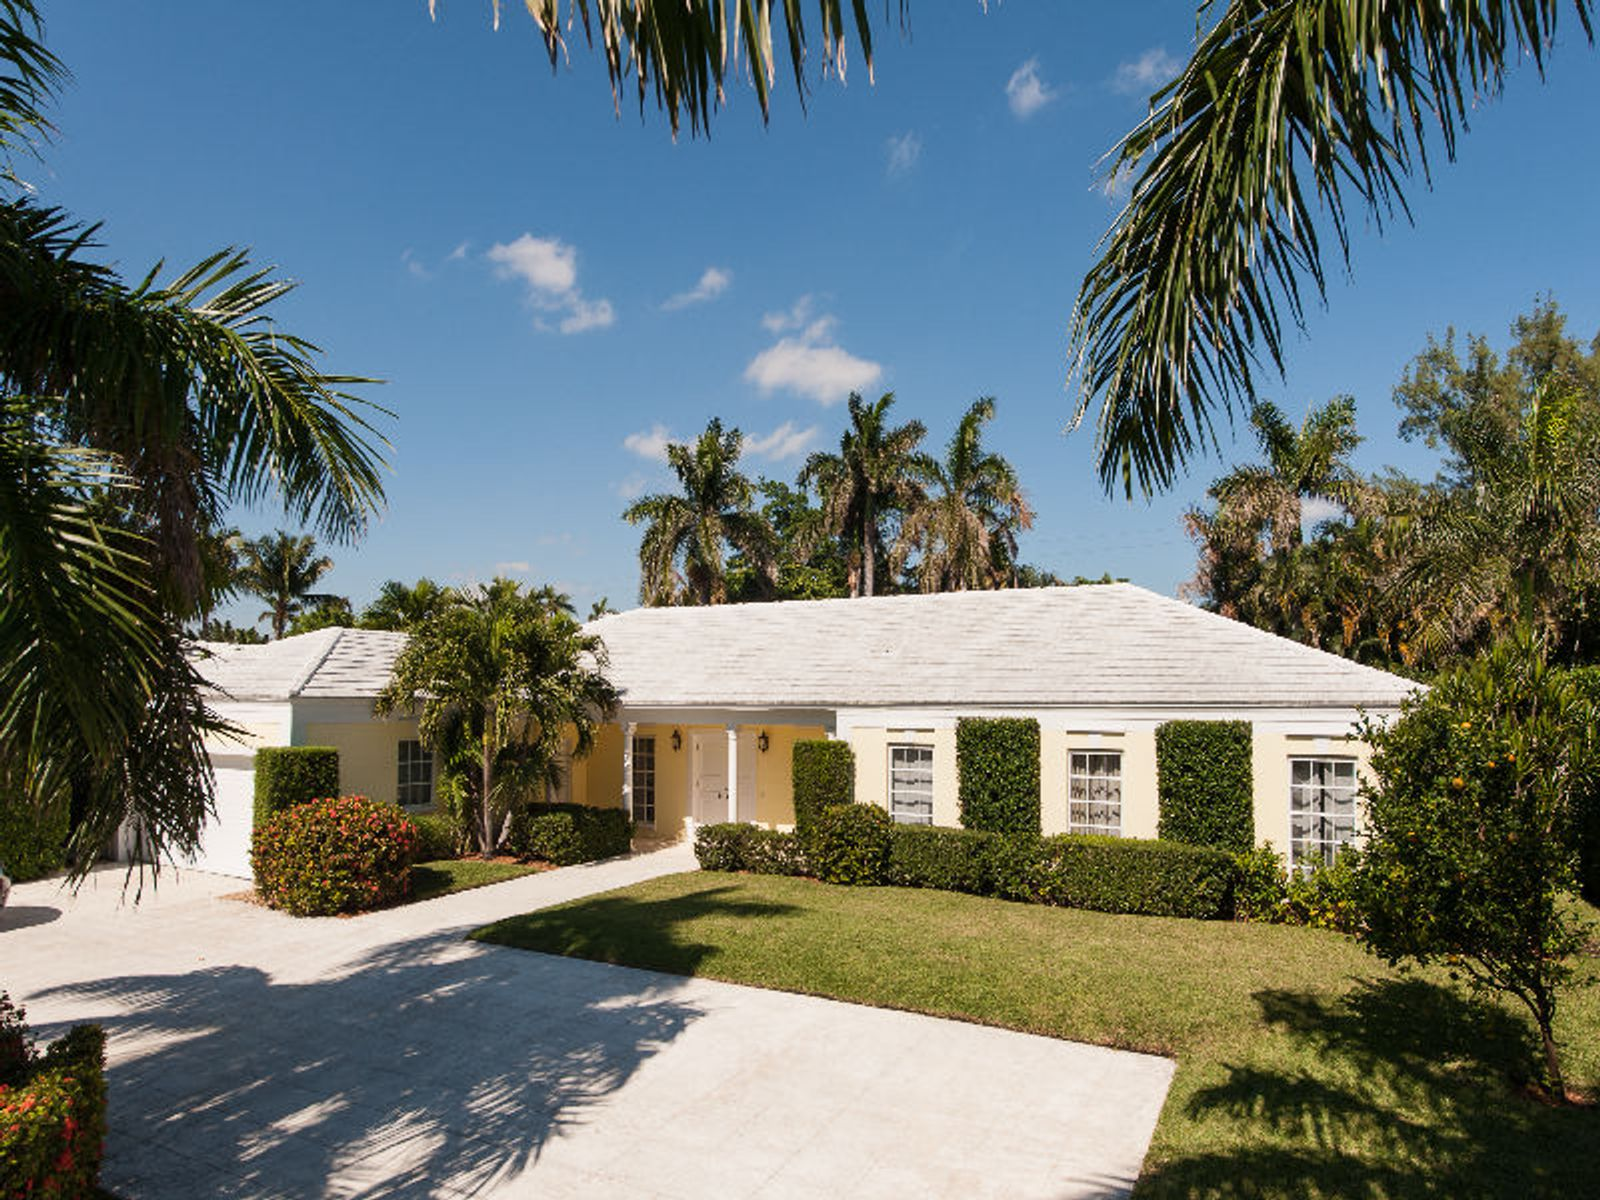 West Indies Drive, Palm Beach FL Single Family Home - Palm Beach Real Estate